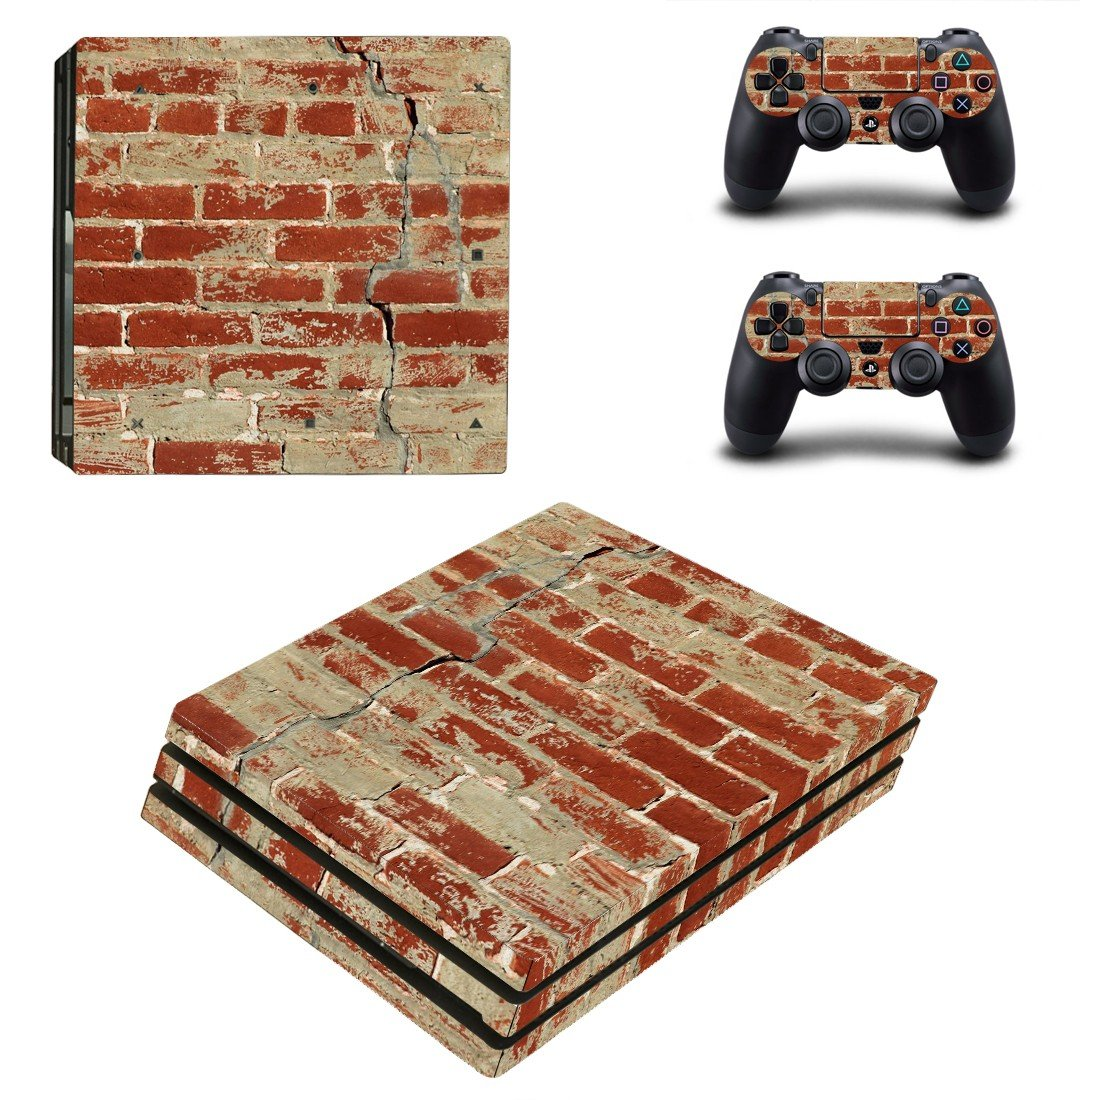 Rusted and Broken Brick wall ps4 pro skin decal for console and controllers